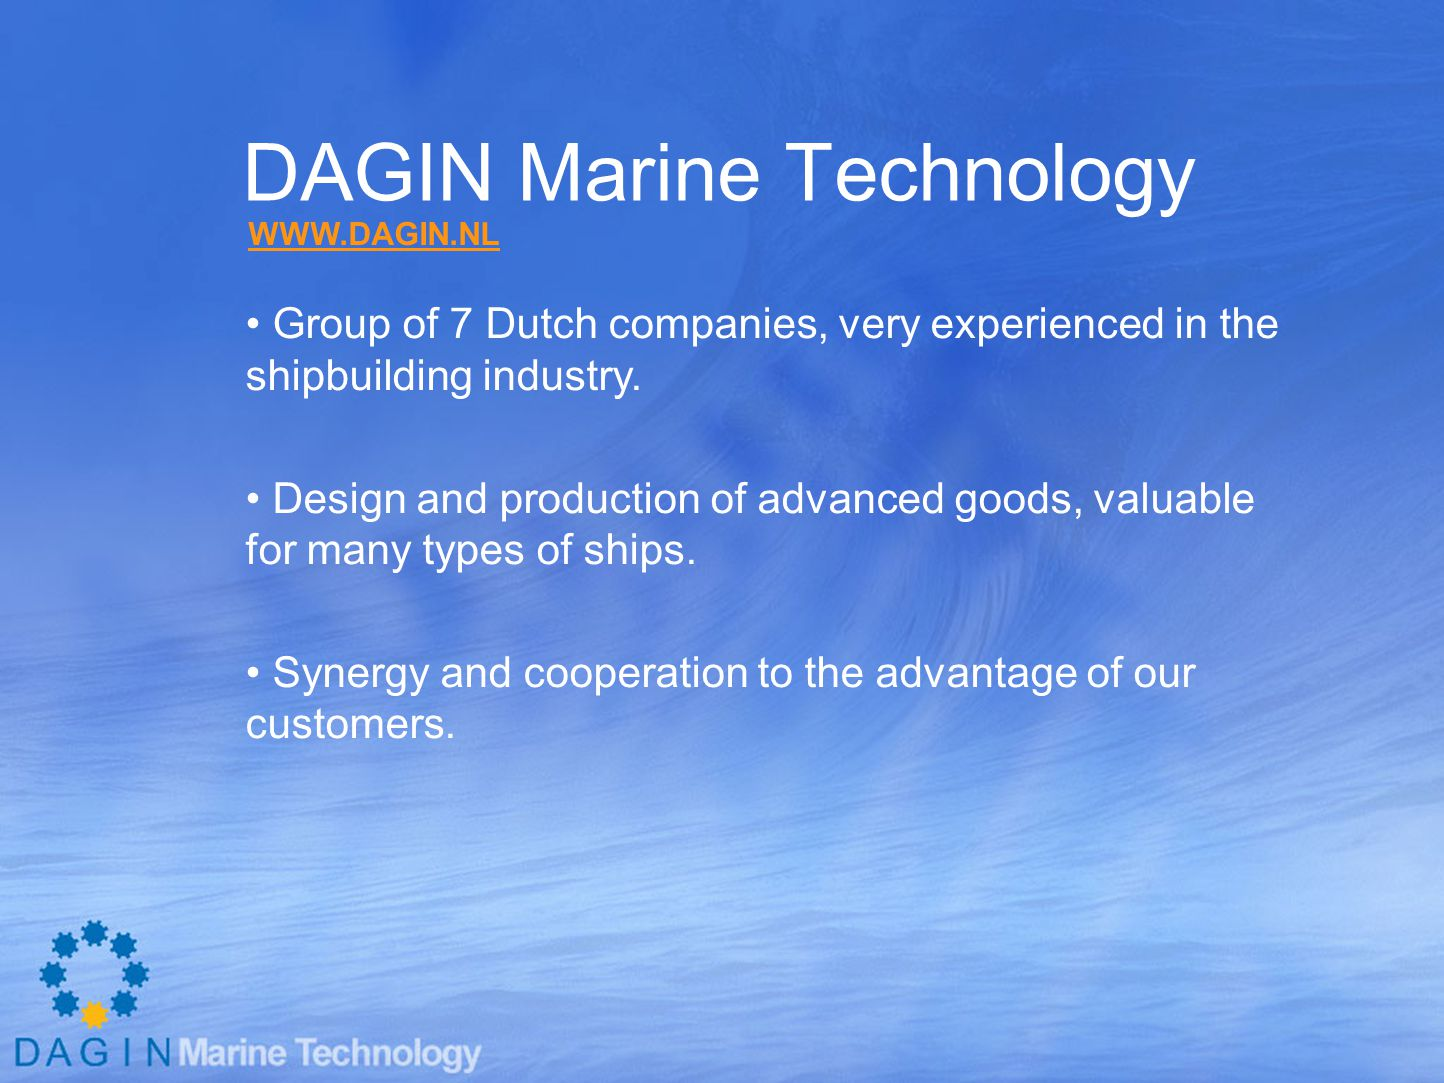 DAGIN Marine Technology